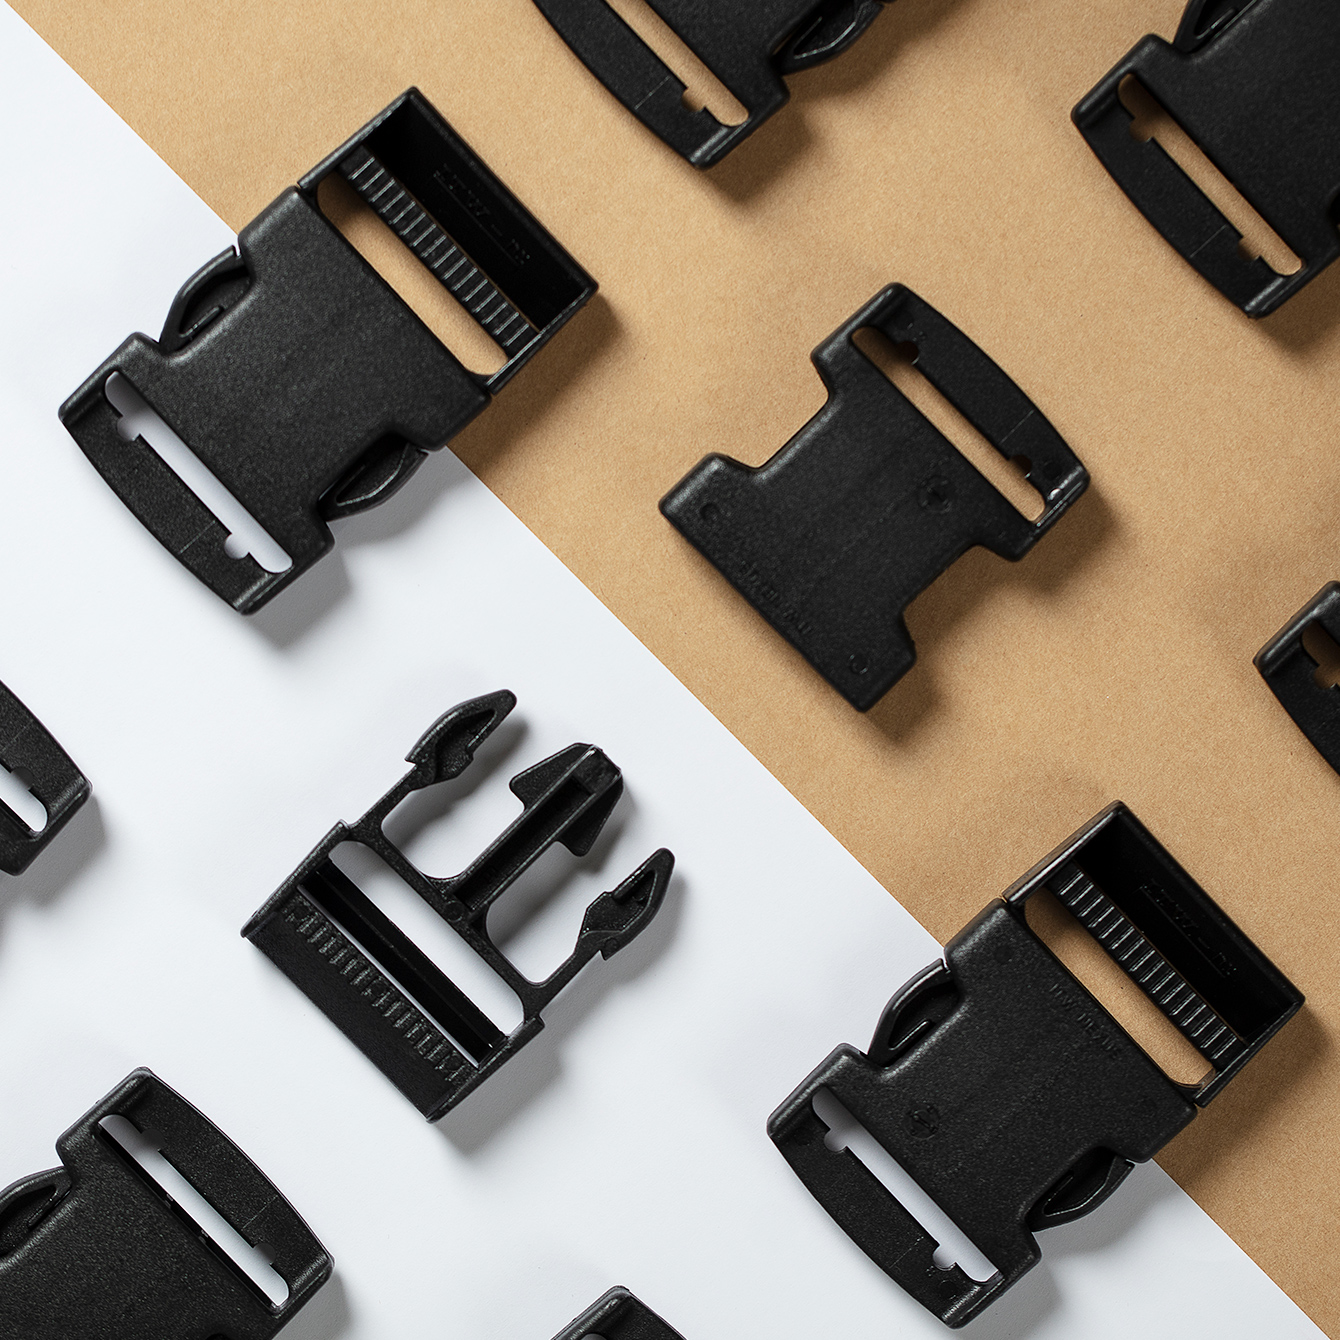 Plastic buckles and other products